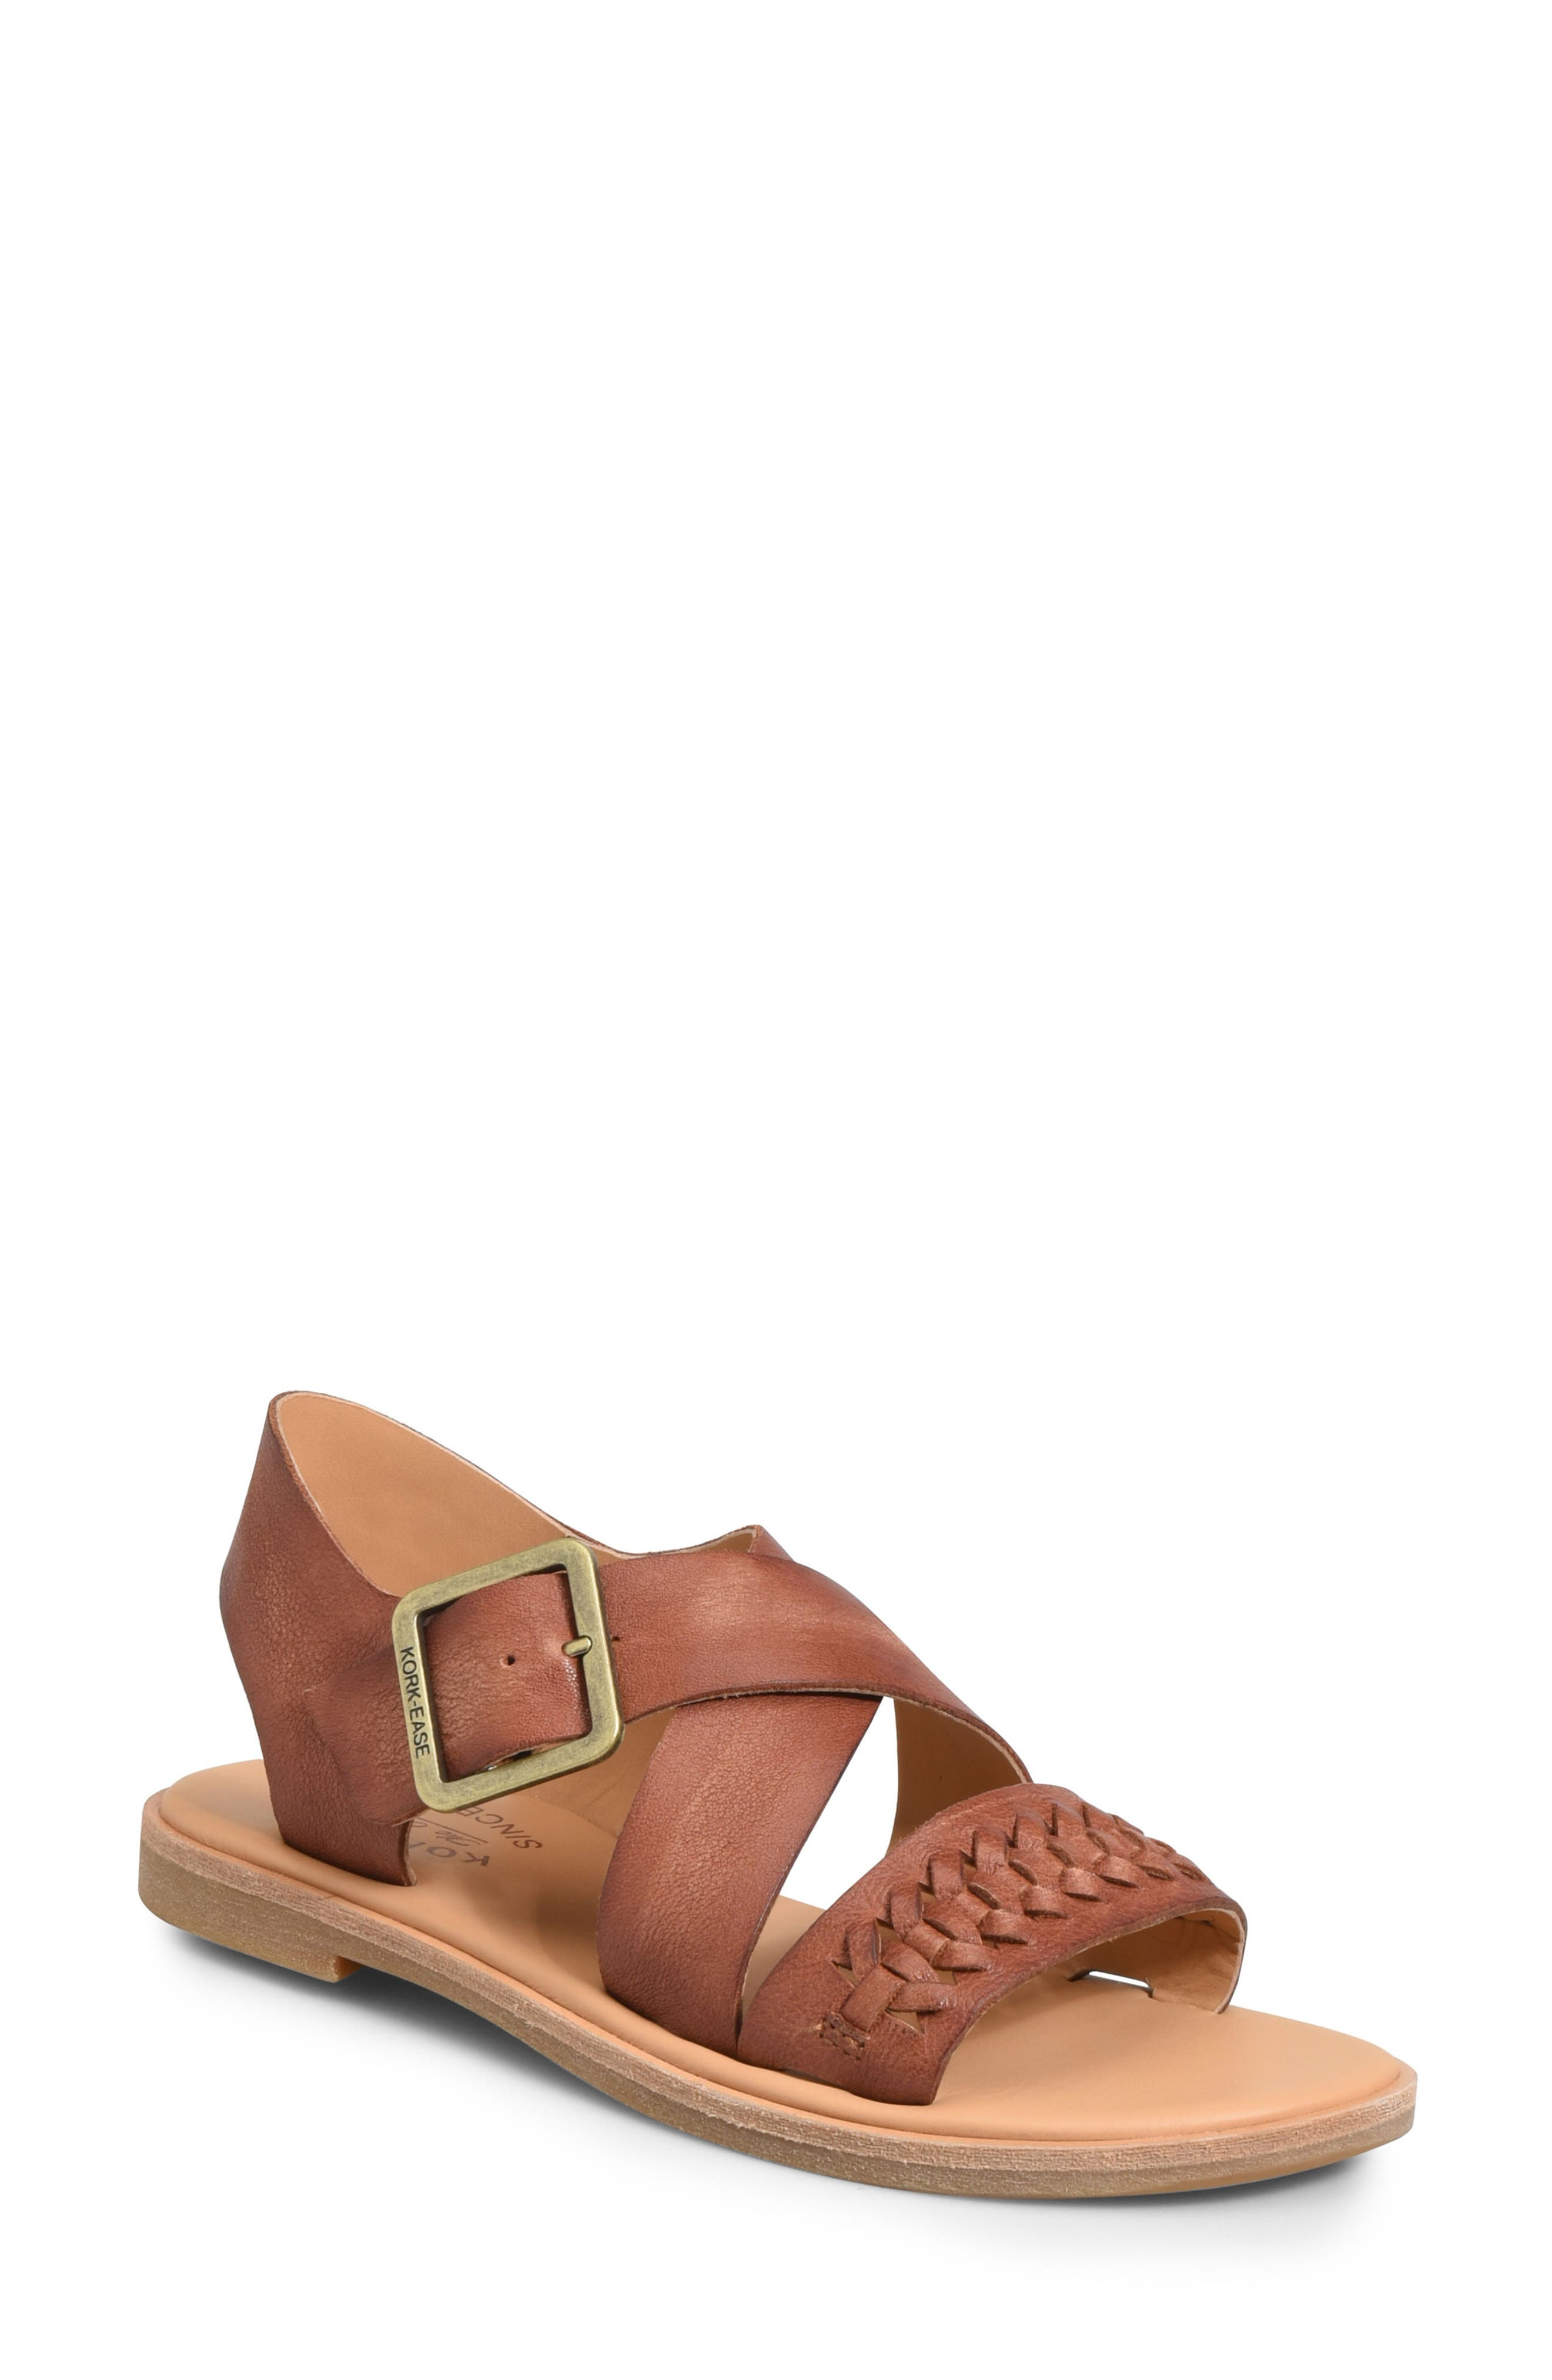 Alternate Image 1 Selected - Kork-Ease® Nara Braid Sandal (Women)